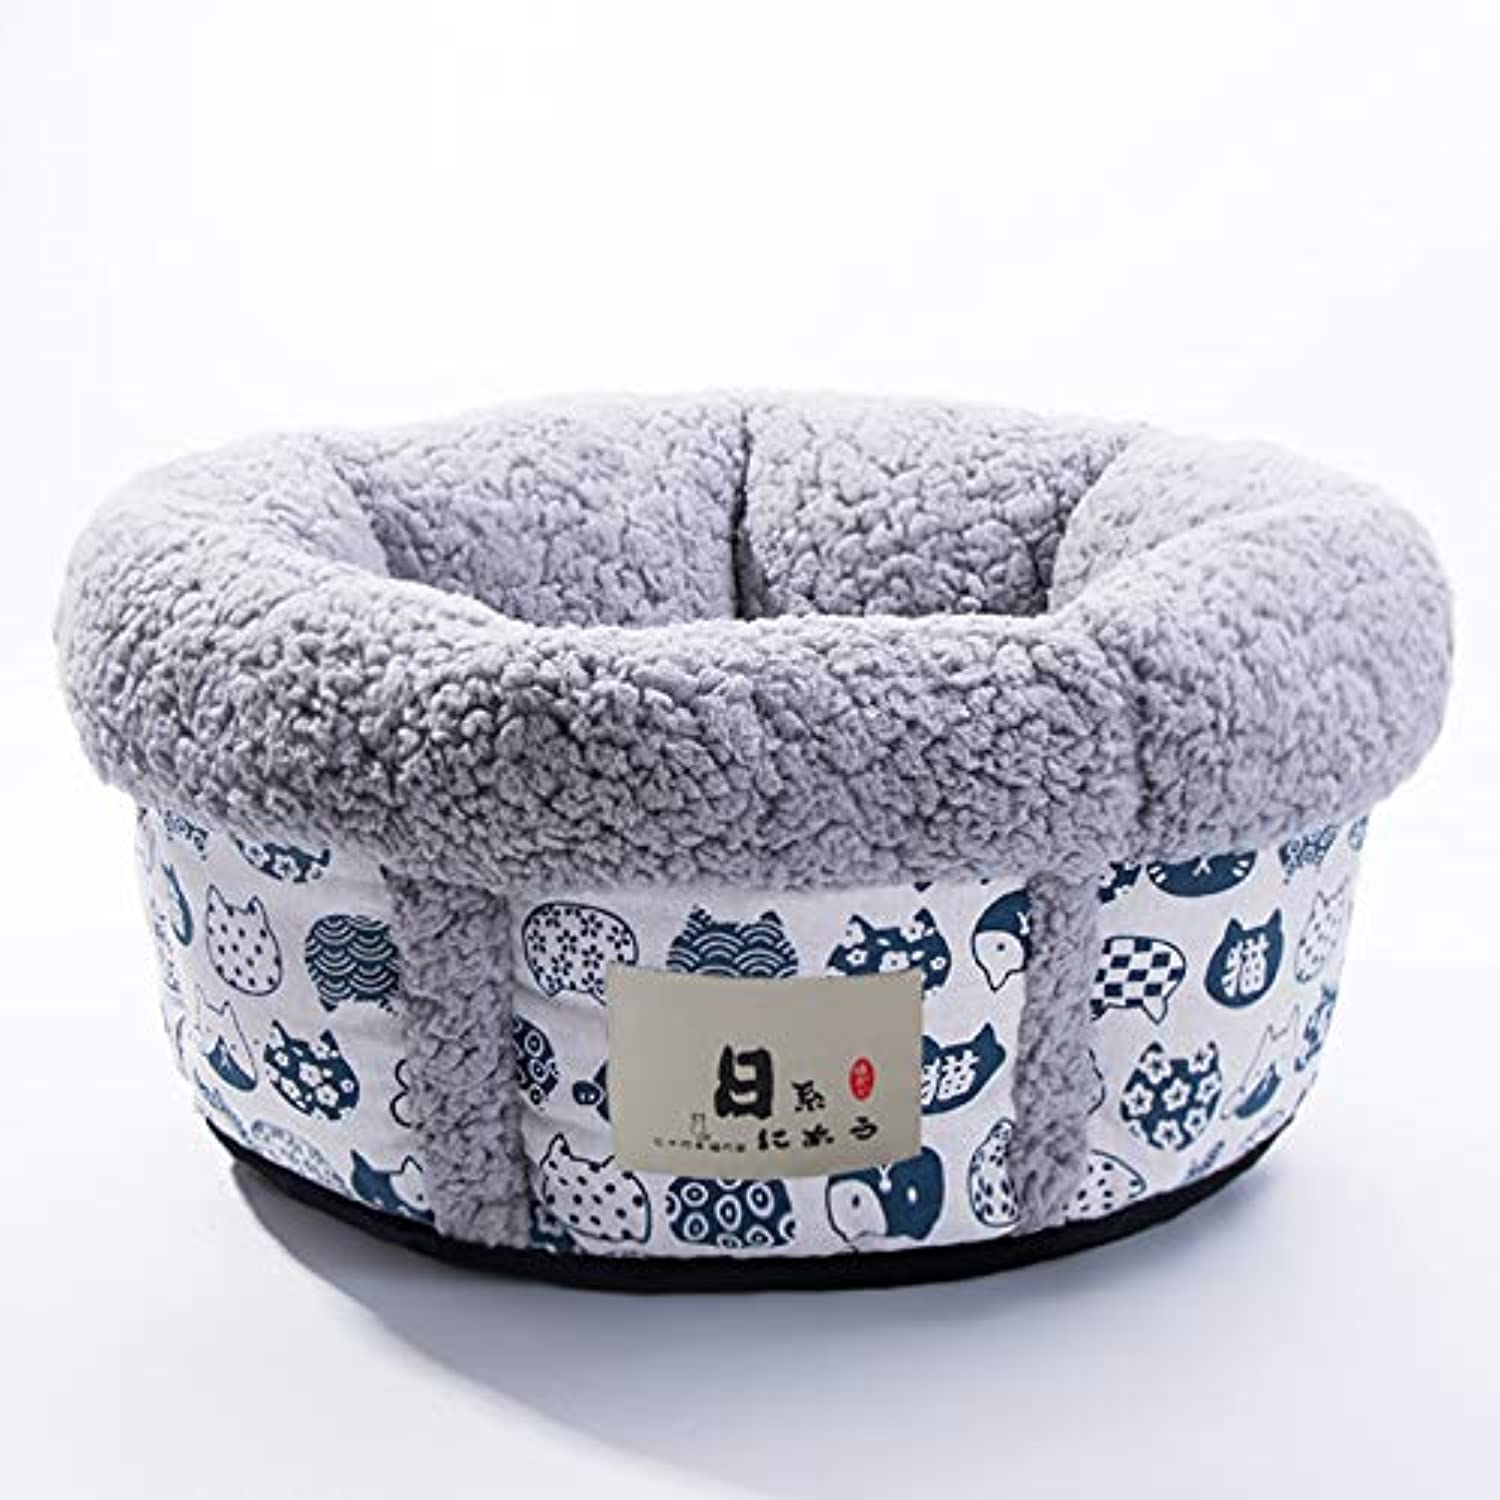 DLwbdx Closed cushions for cat house in Japanese style to keep warm in winter,A big